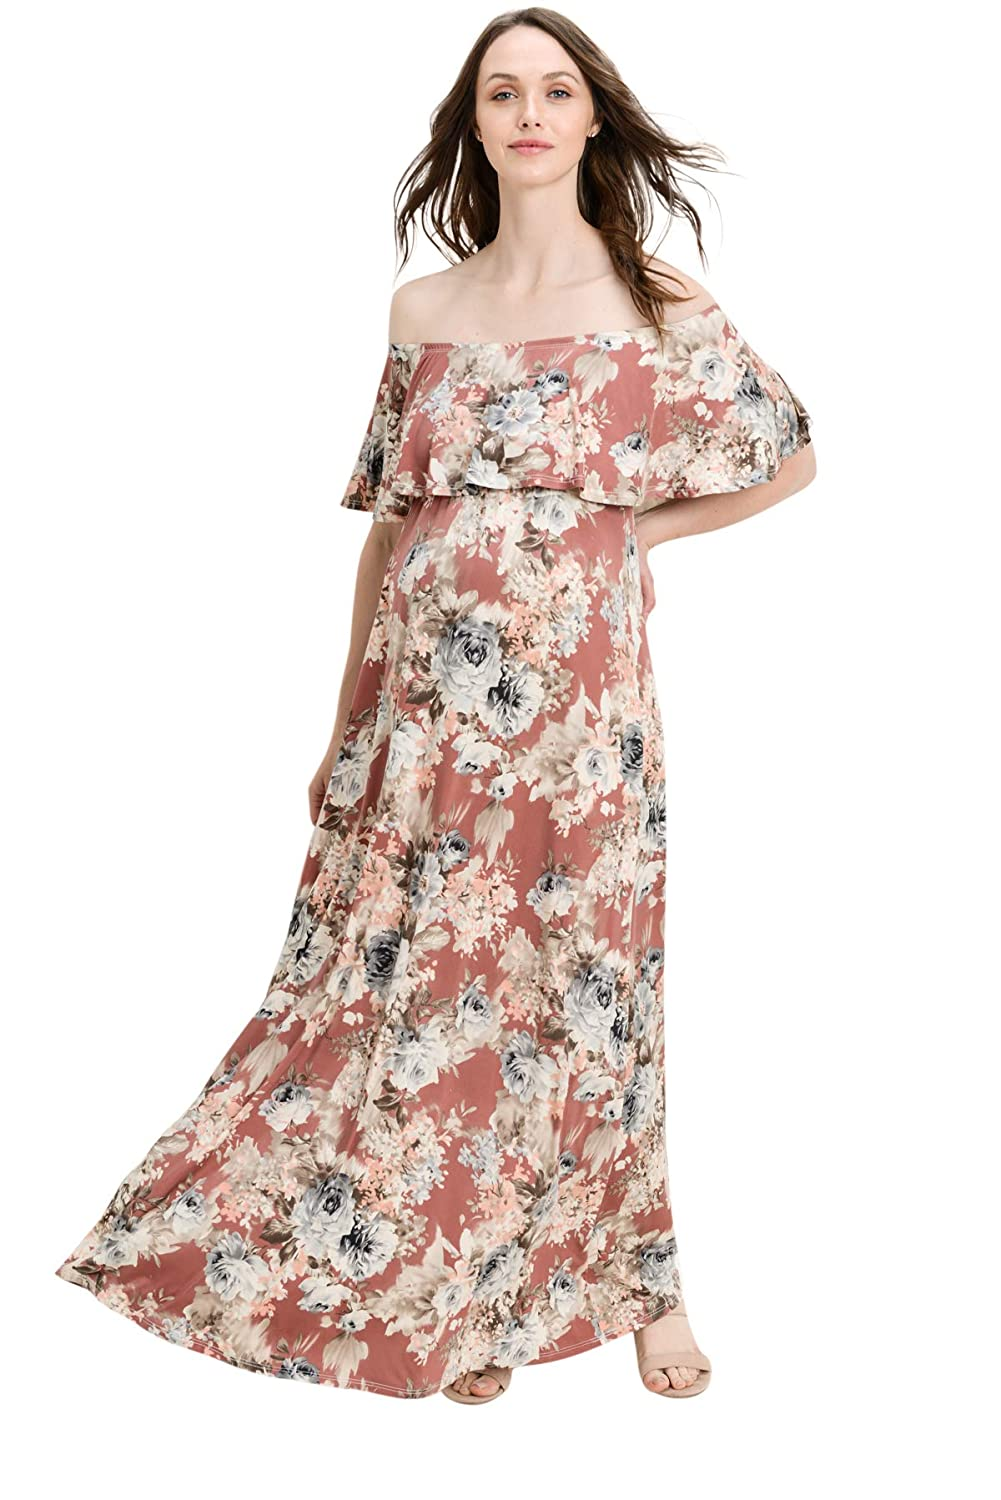 Hello MIZ DRESS レディース B07G3JJ2VN X-Large|Rust Flower Rust Flower X-Large